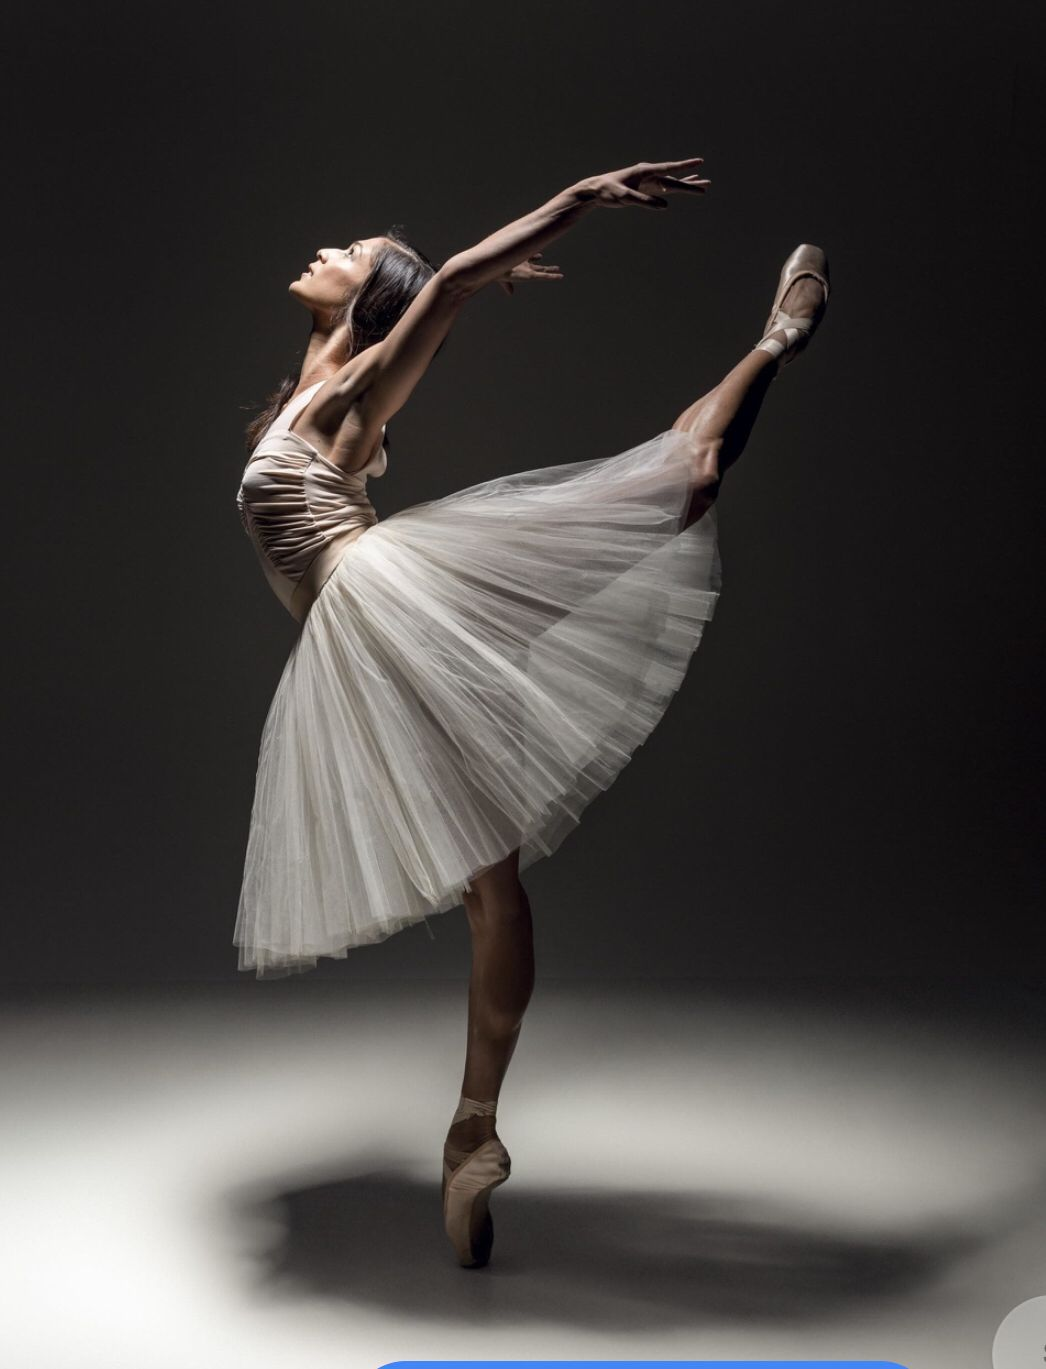 e00d6f62d2643d At a first glance this ballerina looks so graceful And gentle. But in truth  her